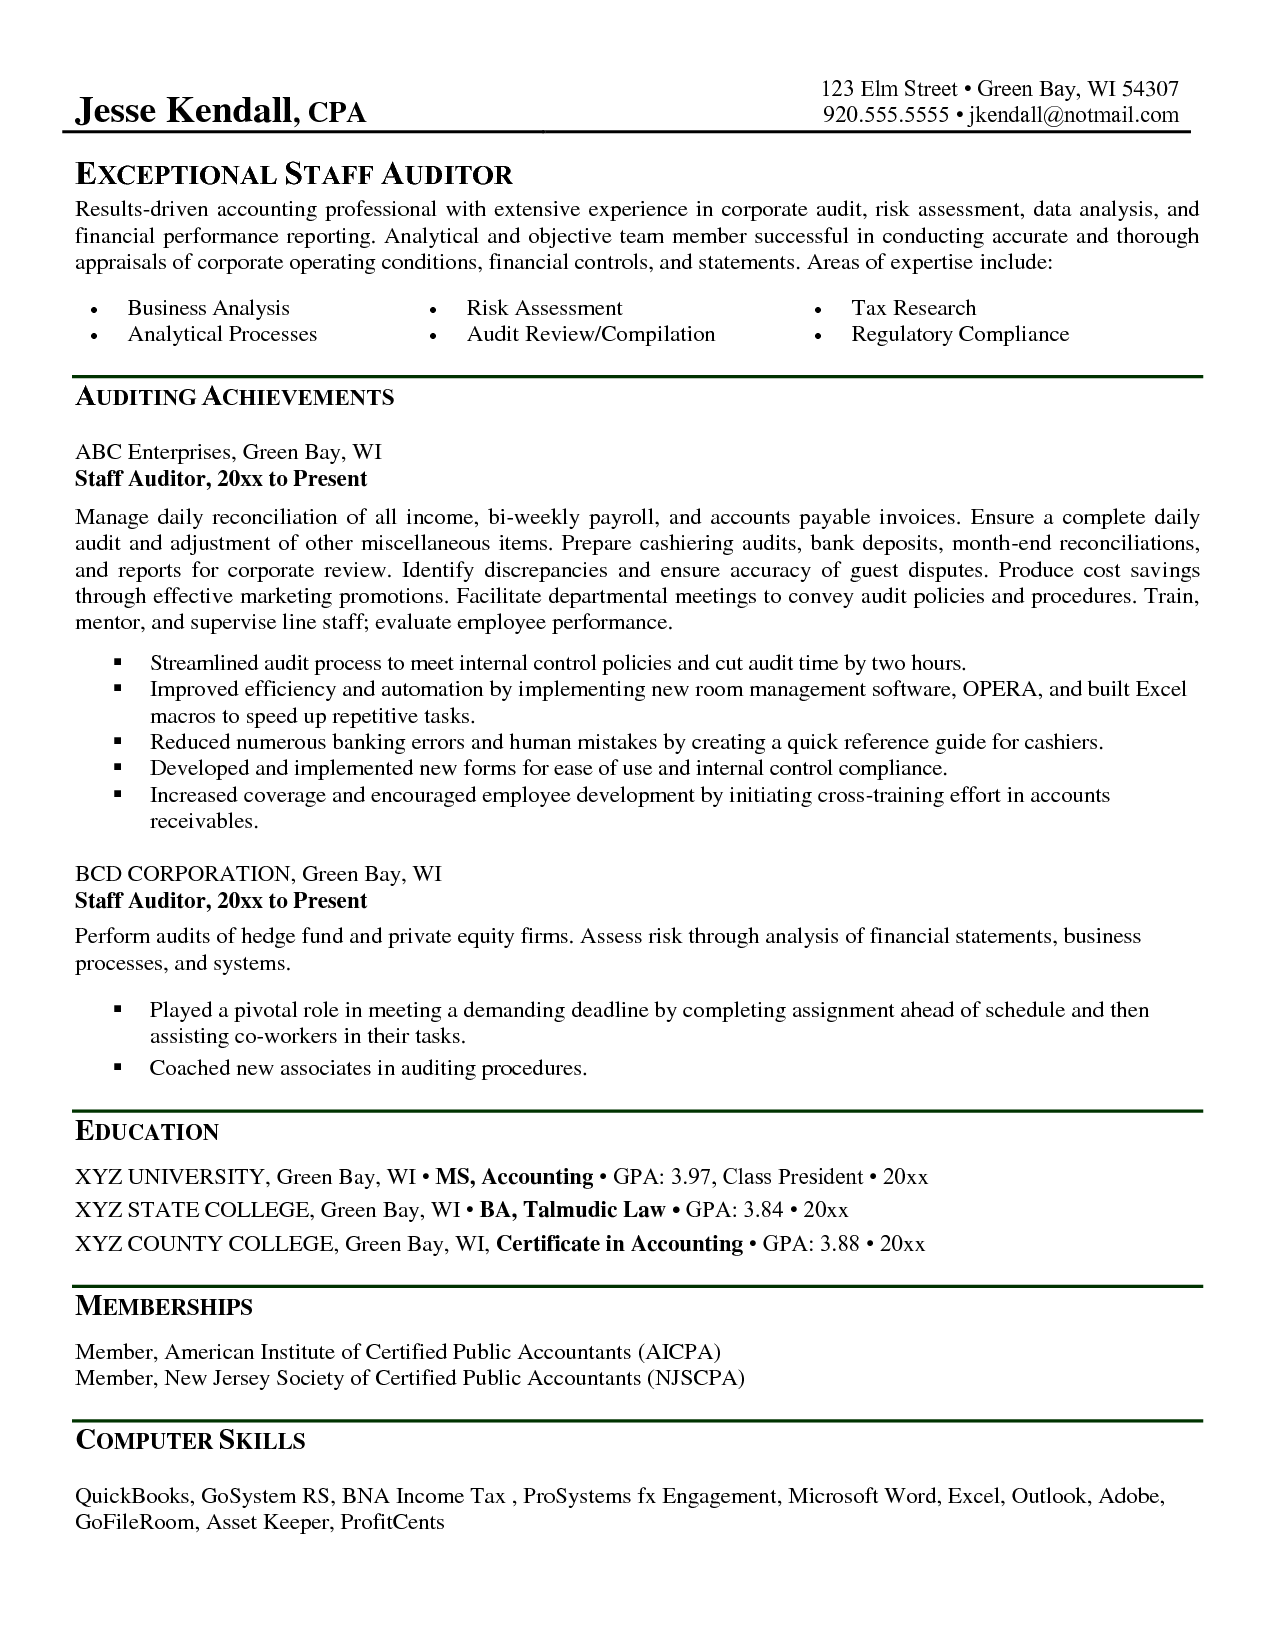 Medical Chart Auditor Sample Resume Esthetic Internal For